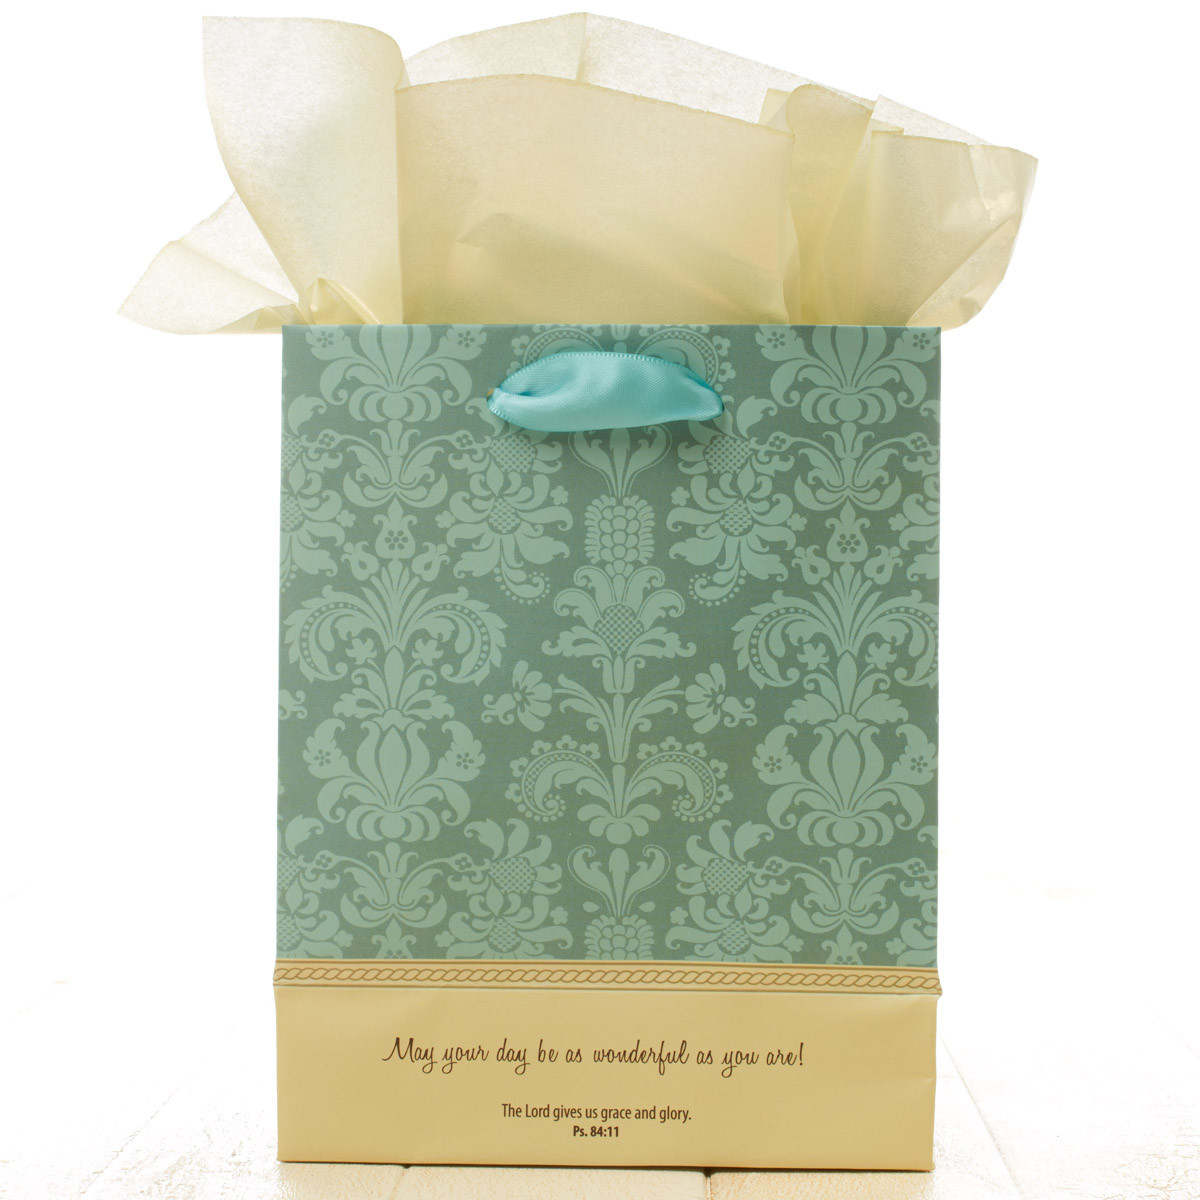 May your day be wonderful small Gift Bag gift bag, small gift bag, tissue and bag, gift wrap, GBA009